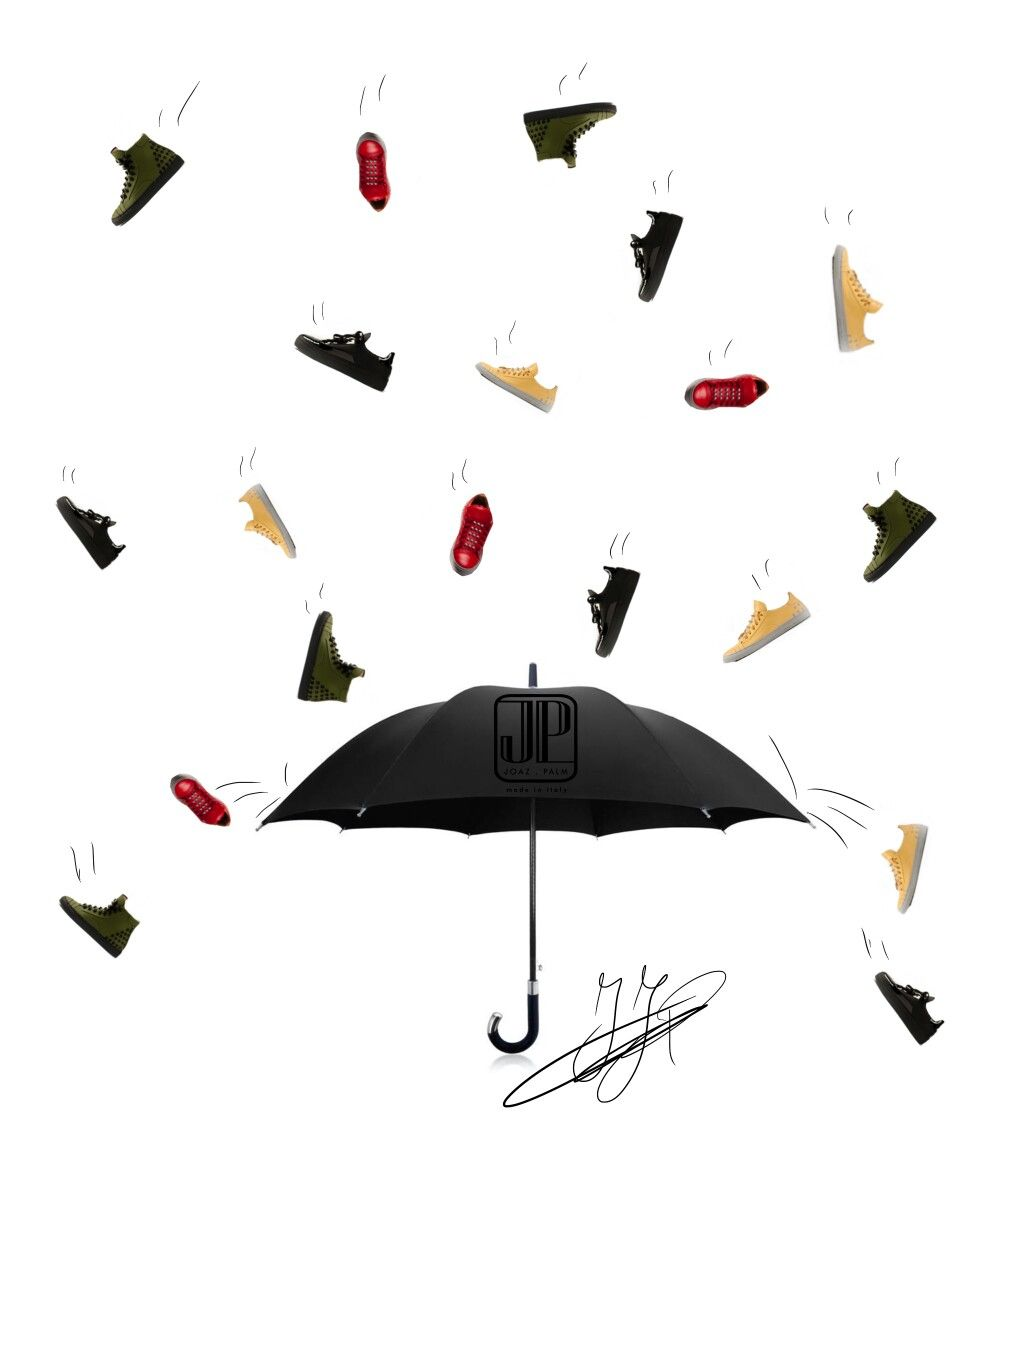 It's sky #raining Palms. A fashion & art story by @joazpalm . The Joaz.Palm ss17 luxury footwear collection is now online for everyone to enjoy Joaz.Palm luxury footwear made in Italy . Get your palms now for its to late and by royalty   www.joazpalmdesigns.com  #worldwide #stores #usa #fashion #footwear #luxury #clean #art #style #womenswear #mensstyle #come #haveit #hiend #dubai #roma #milano #paris #lyon #japan #leather #rubber #royal #black #red #colors #moda